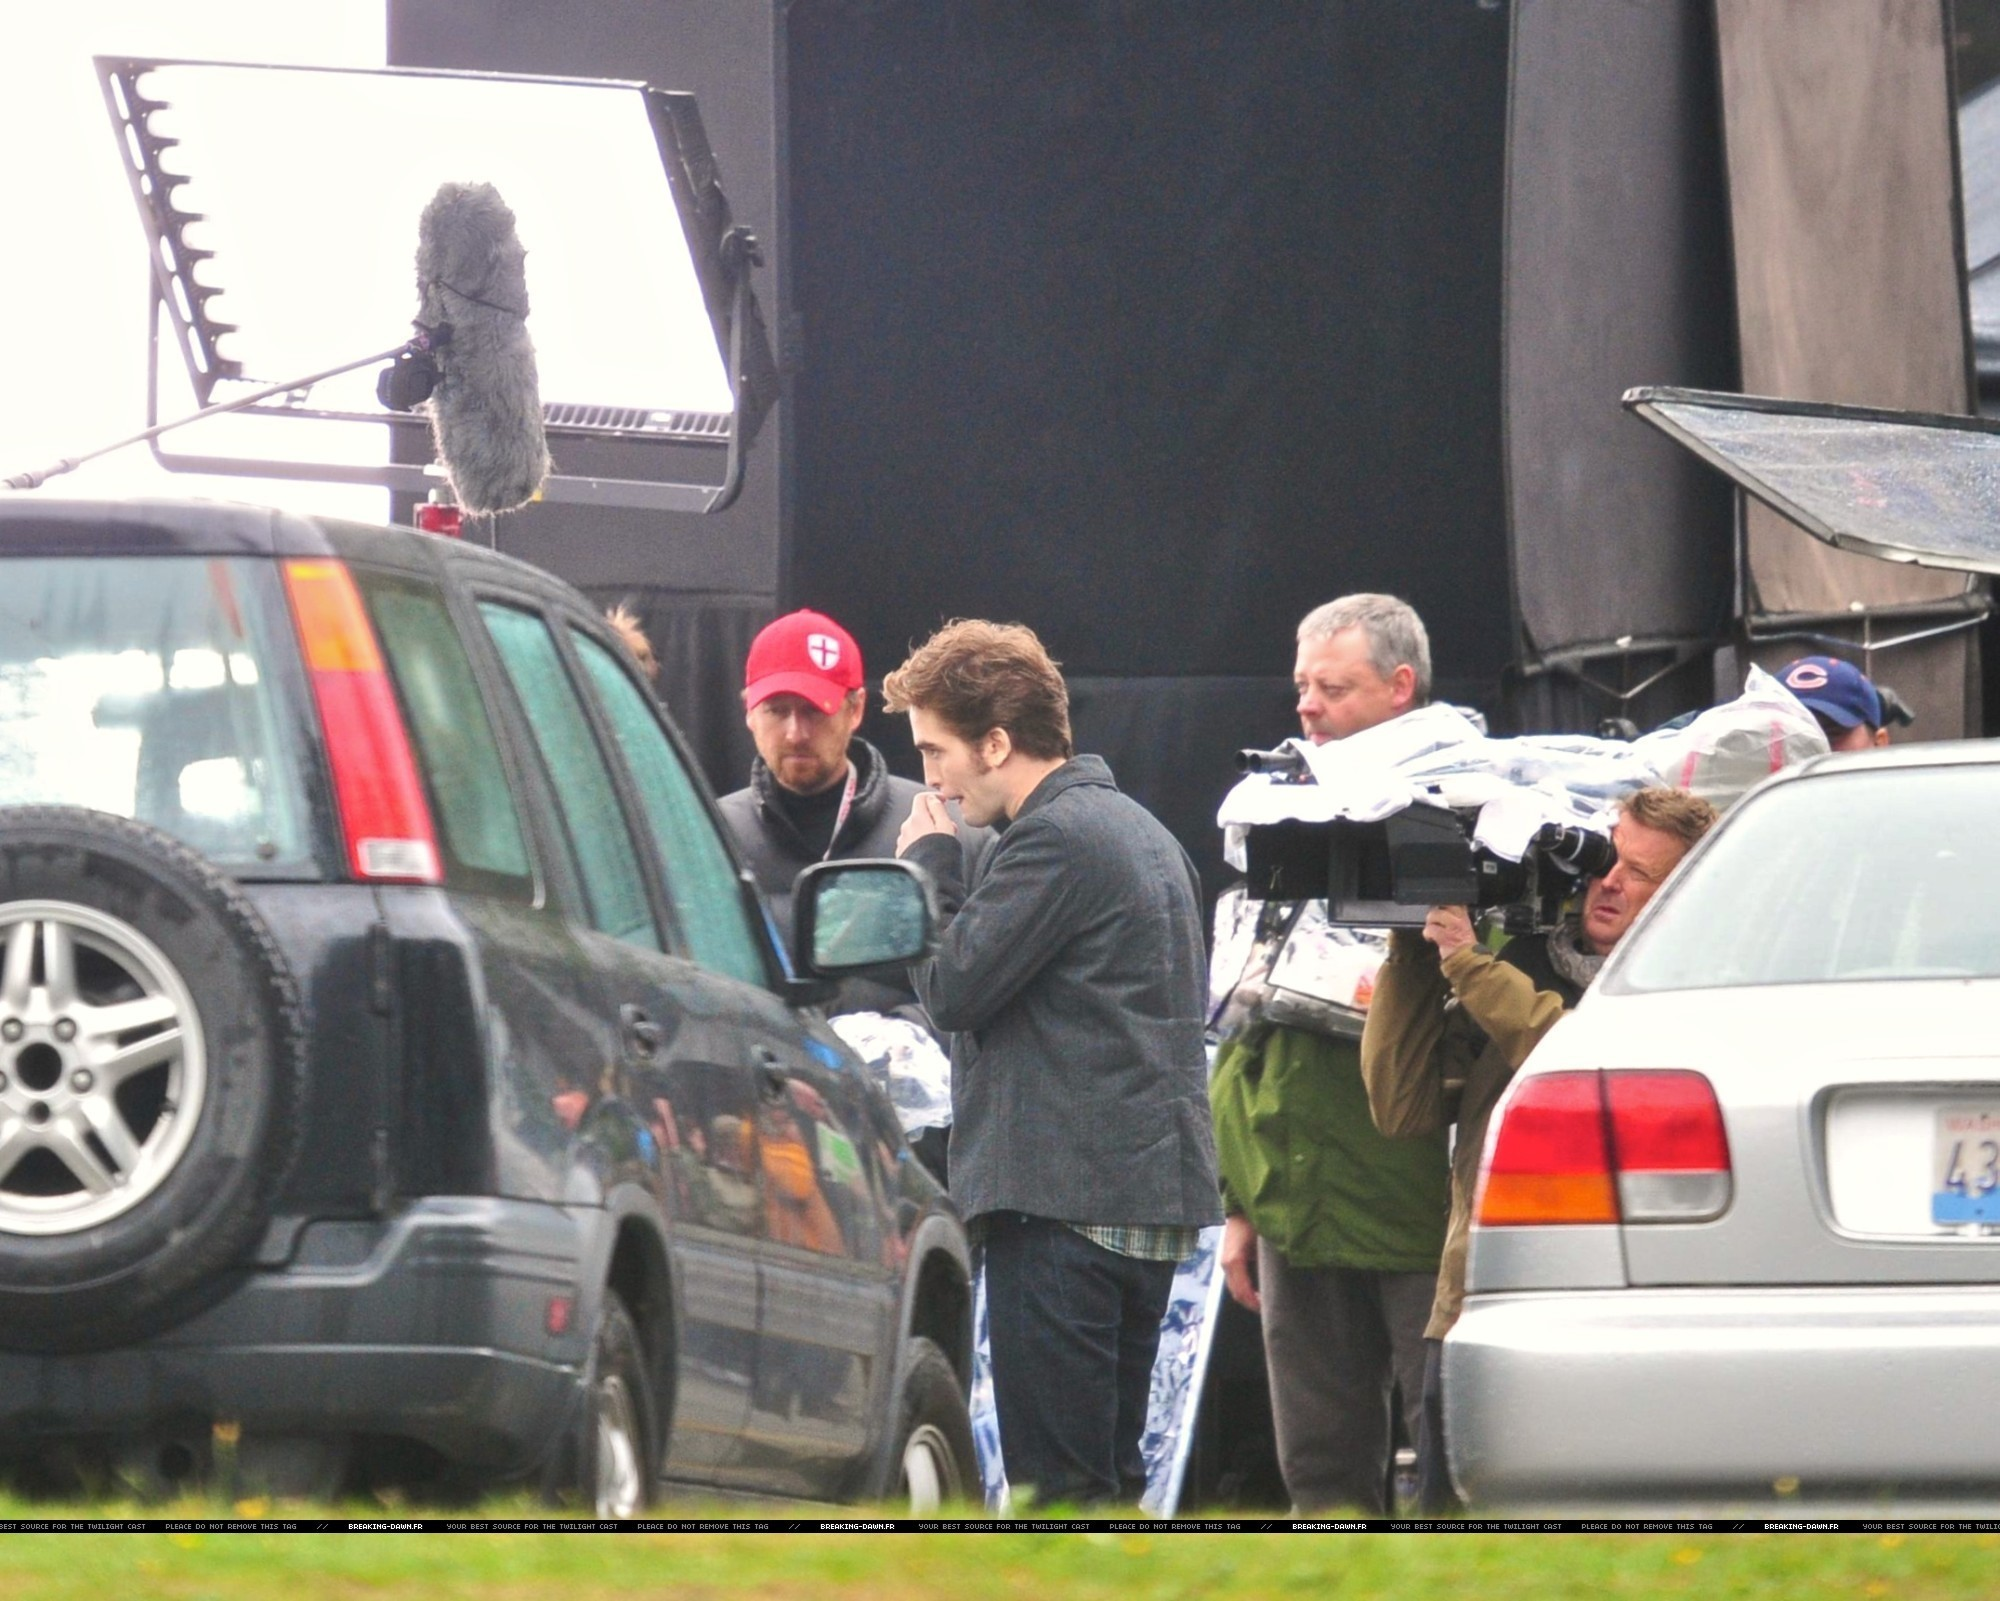 http://images2.fanpop.com/images/photos/8000000/Rob-kristen-on-the-set-of-Eclipse-yesterday-twilight-series-8080089-2000-1601.jpg